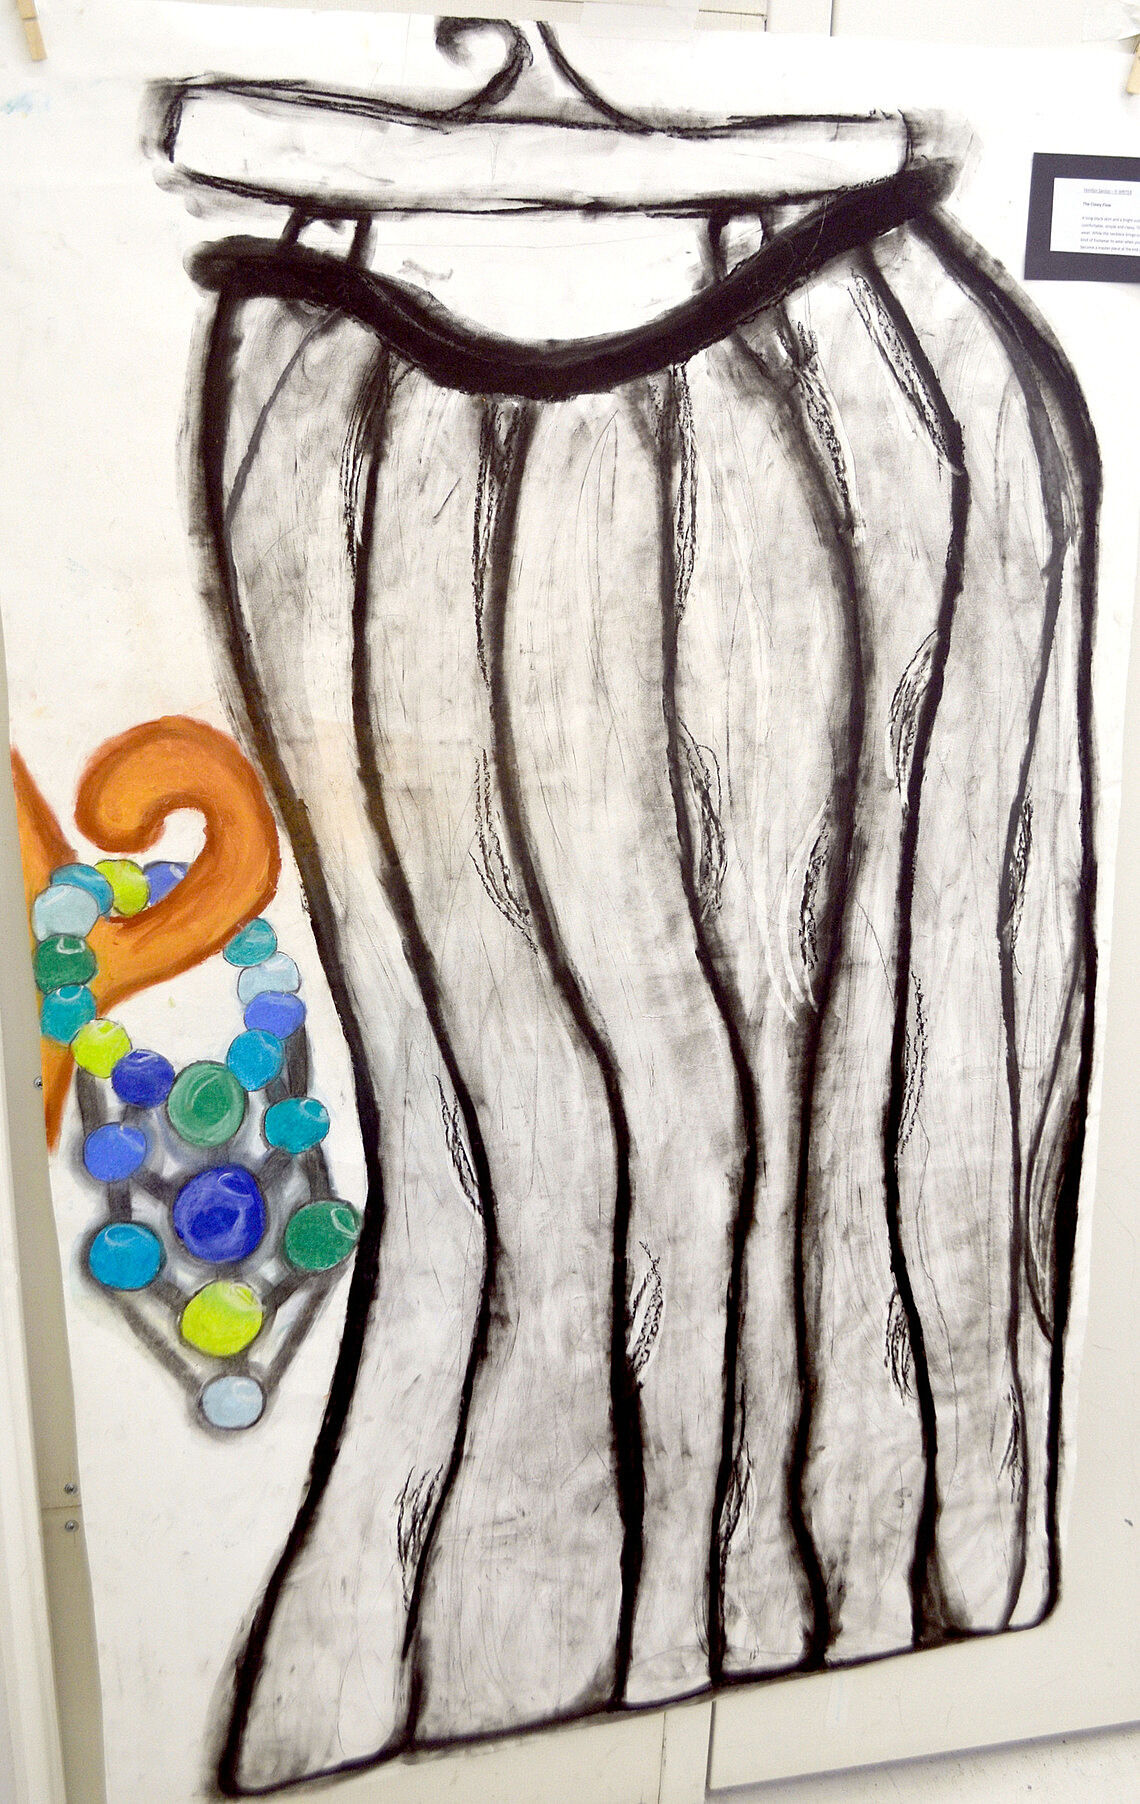 Drawing of a skirt on a hanger.